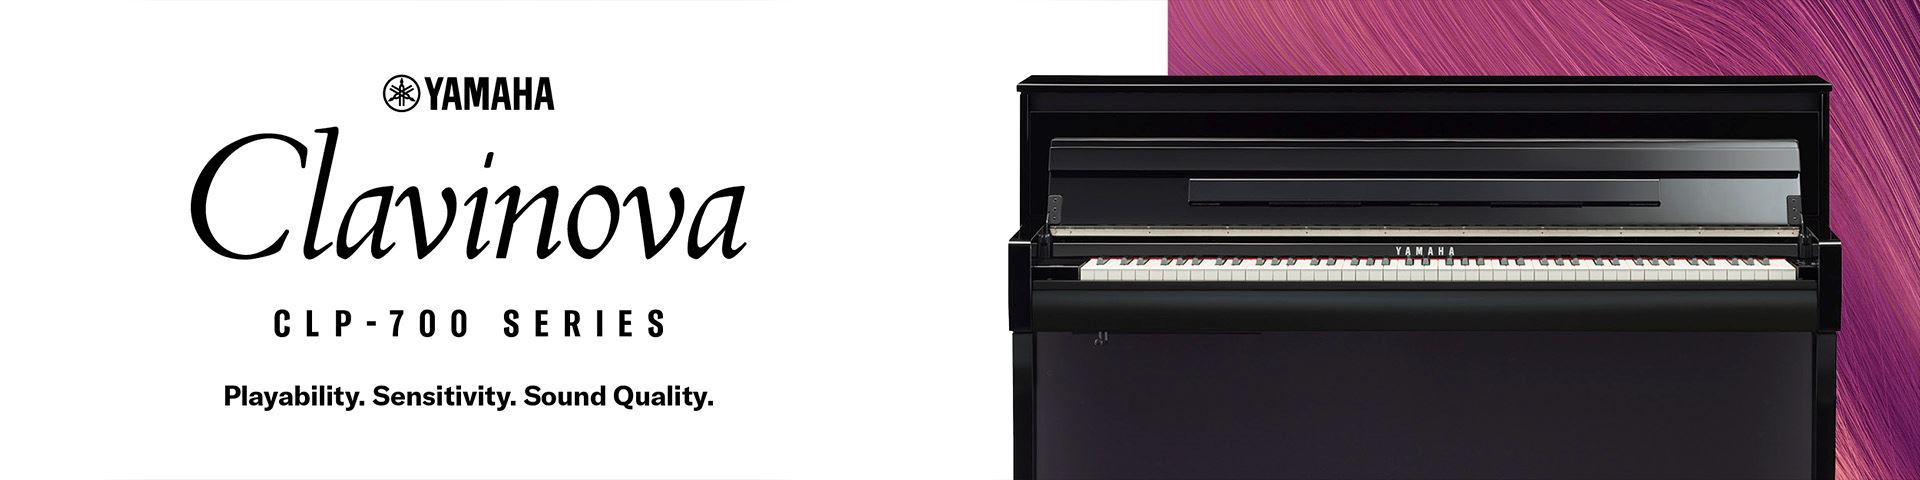 Introducing the exciting CLP-700 Series Clavinova Digital Piano